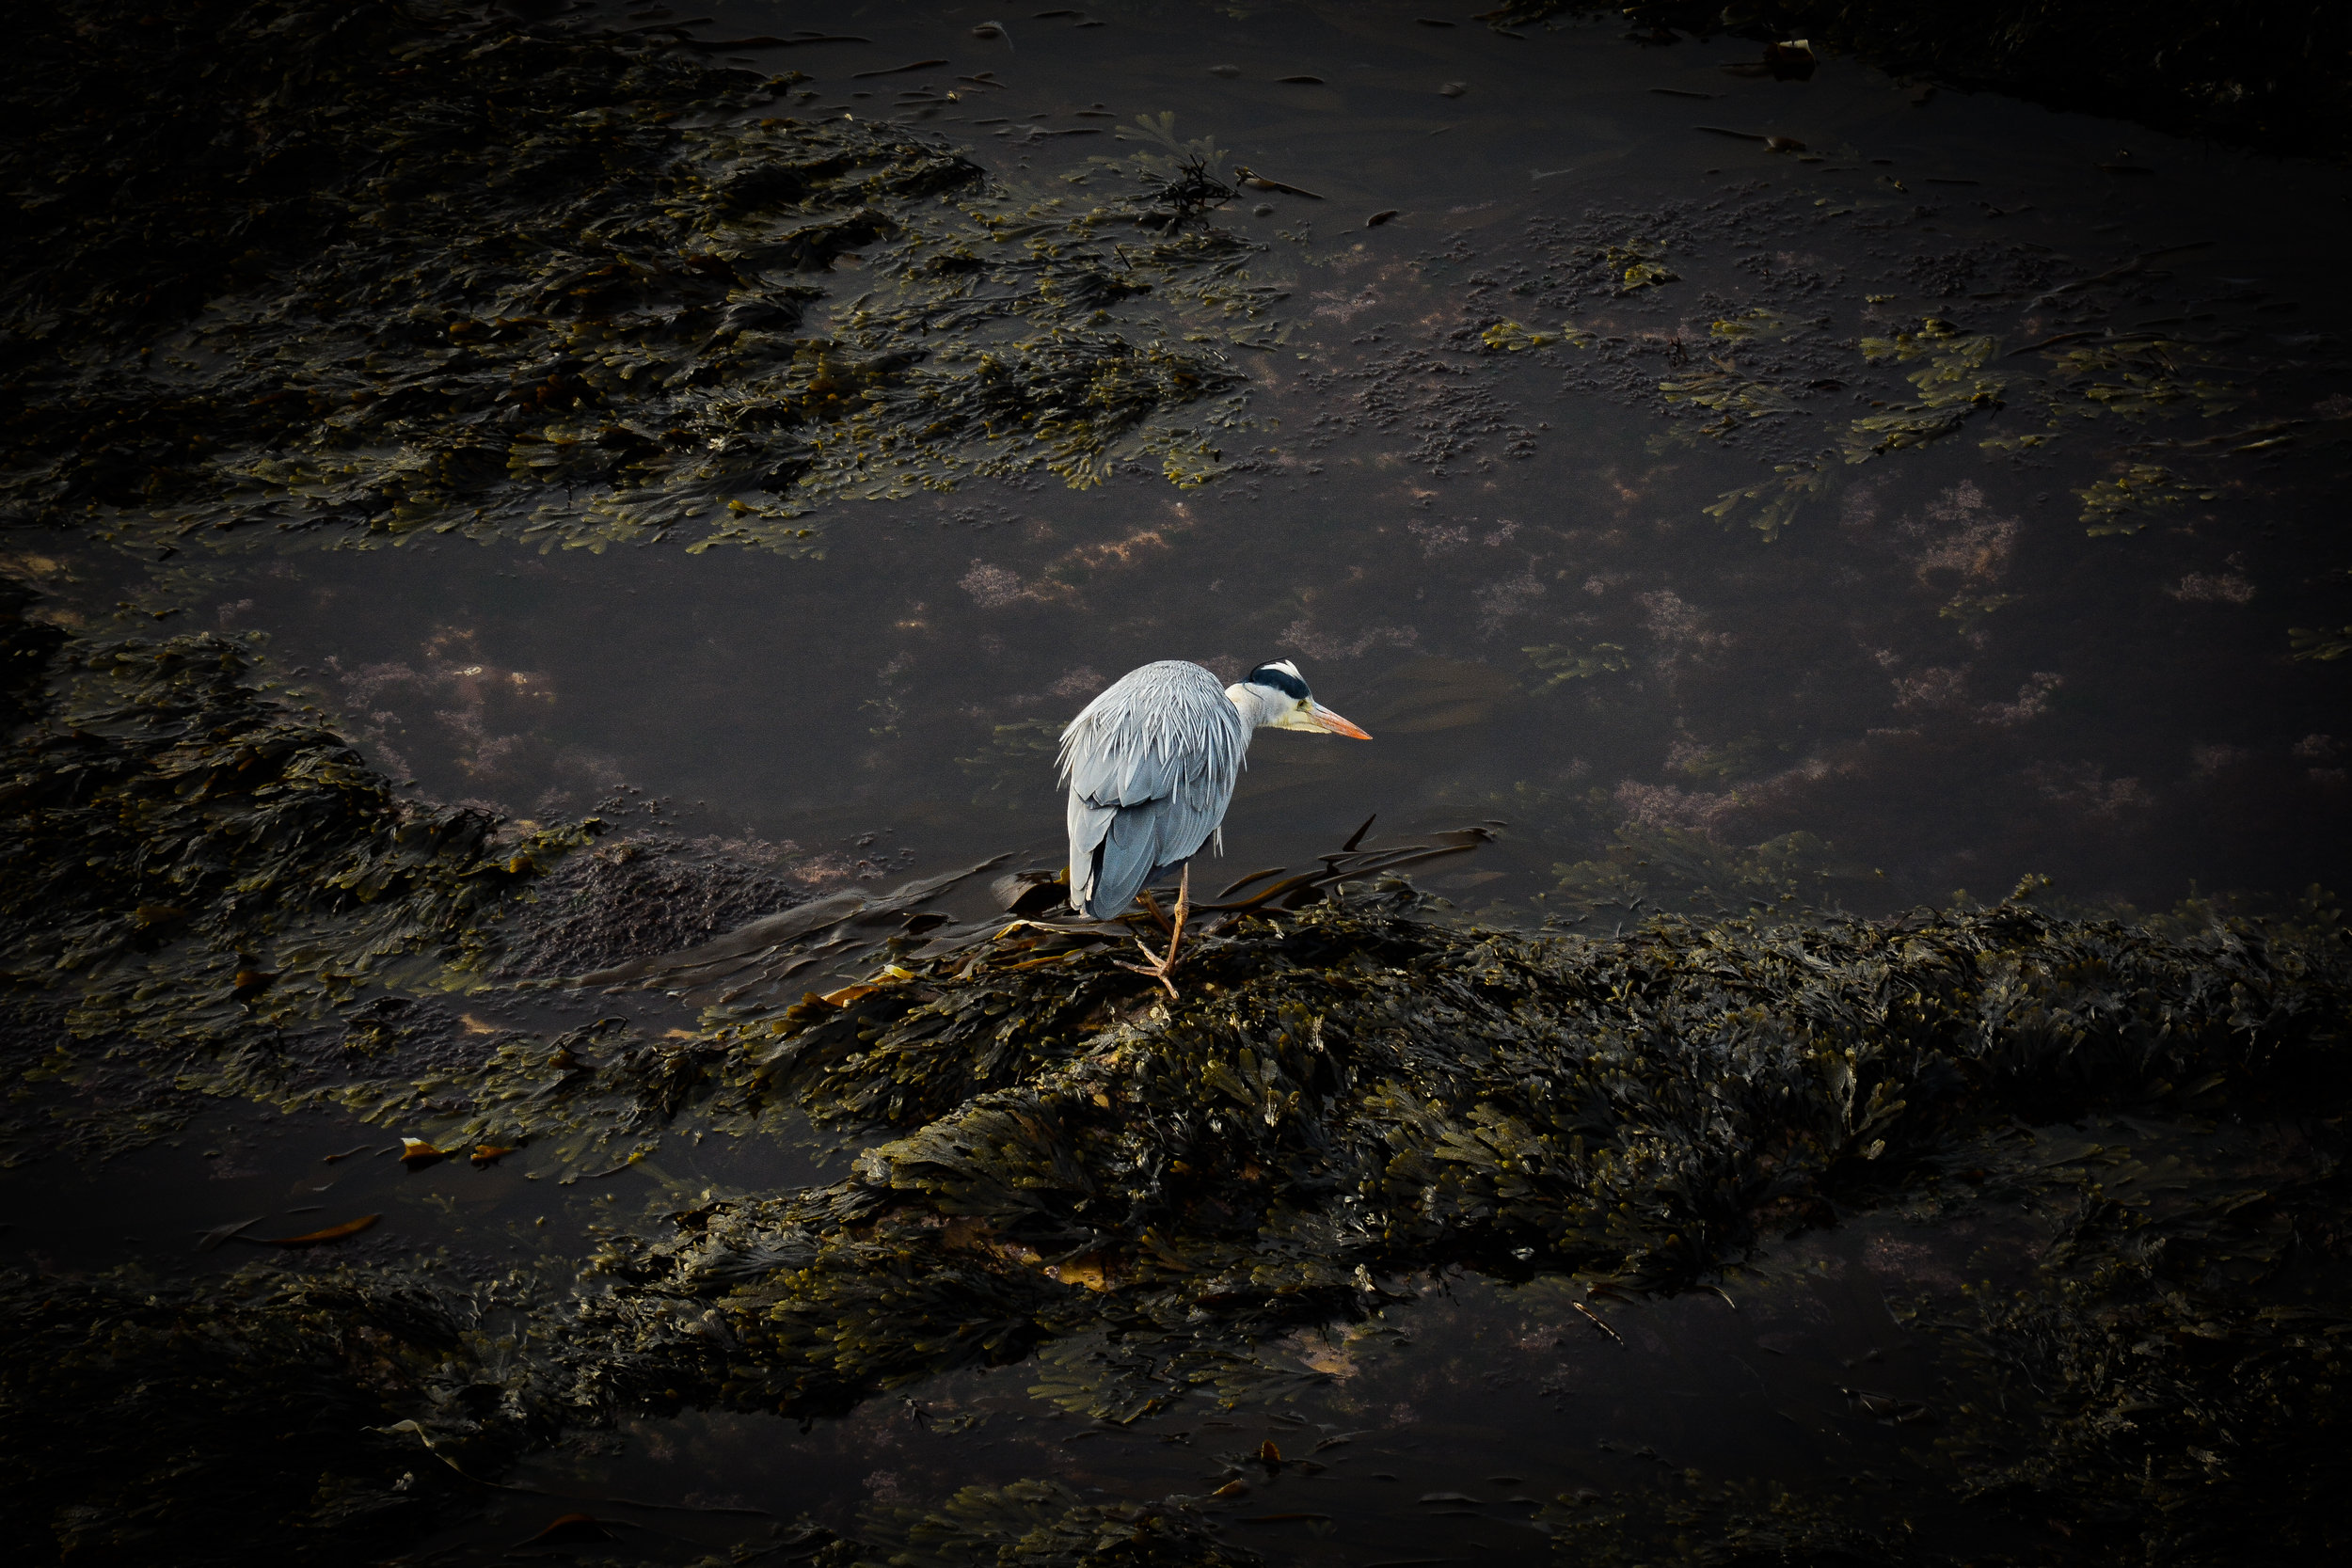 Fishing heron. Nikon D7100 (18-105mm f/3.5-5.6G ED VR Lens)